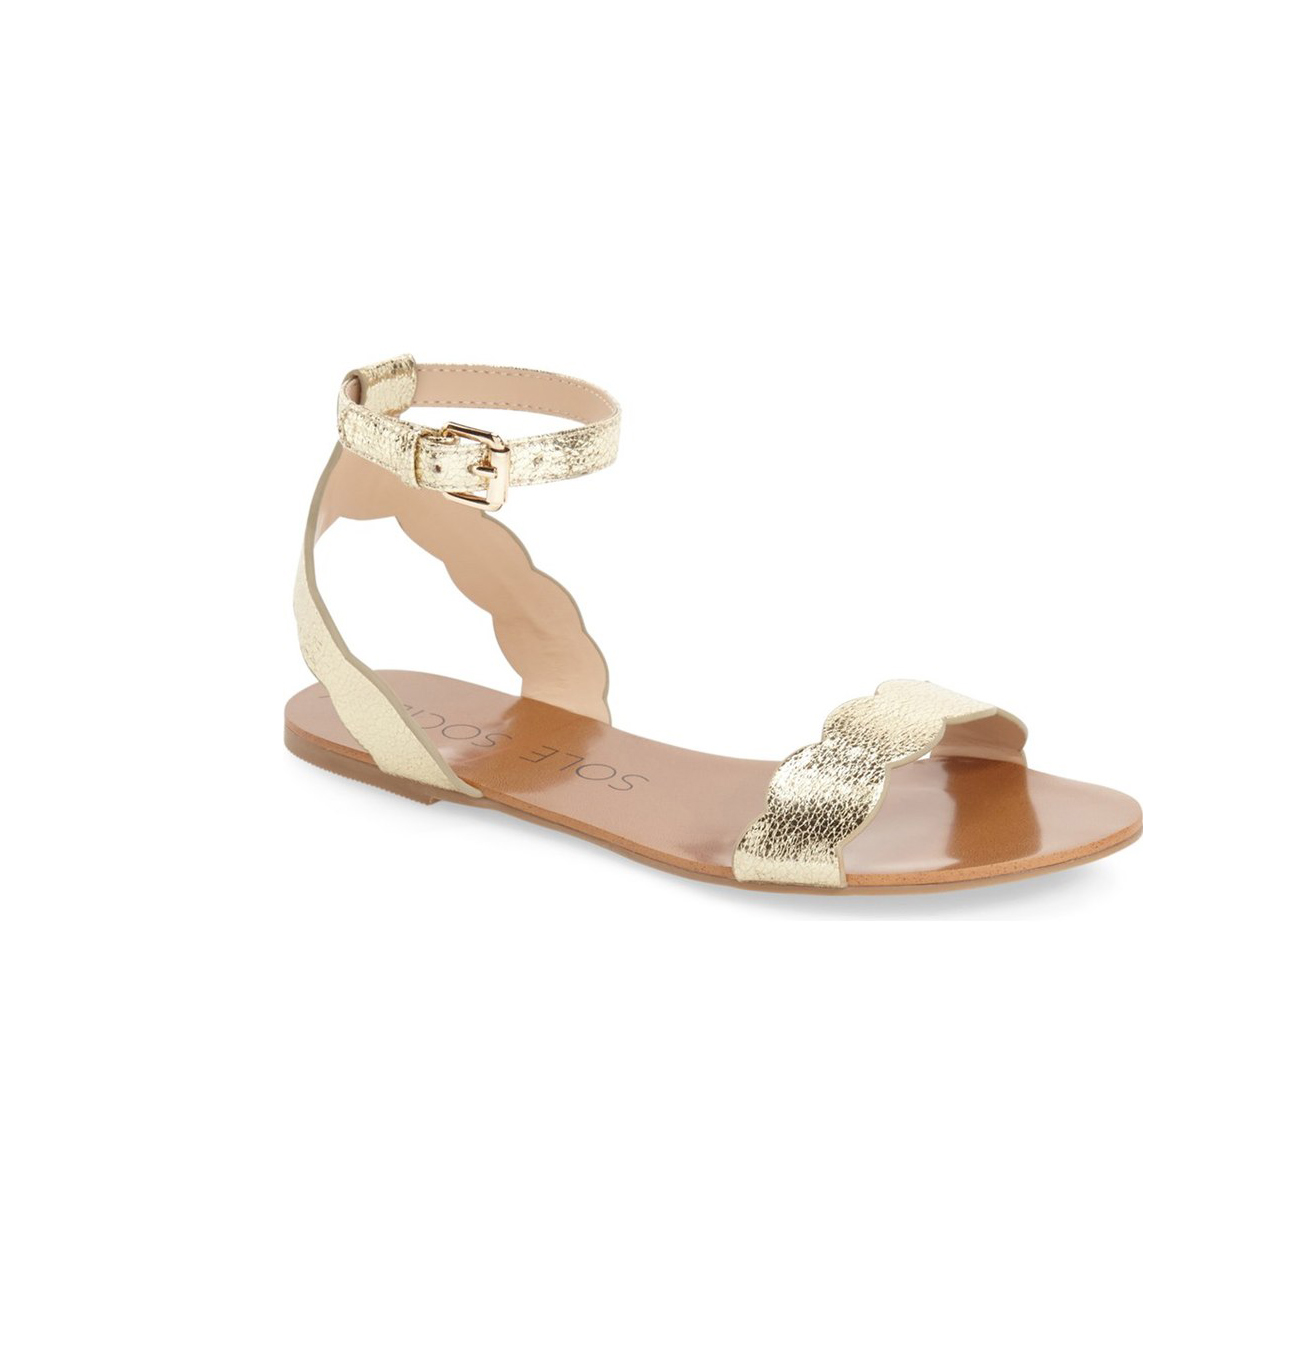 Sole Society 'Odette' Scalloped Ankle Strap Flat Sandal